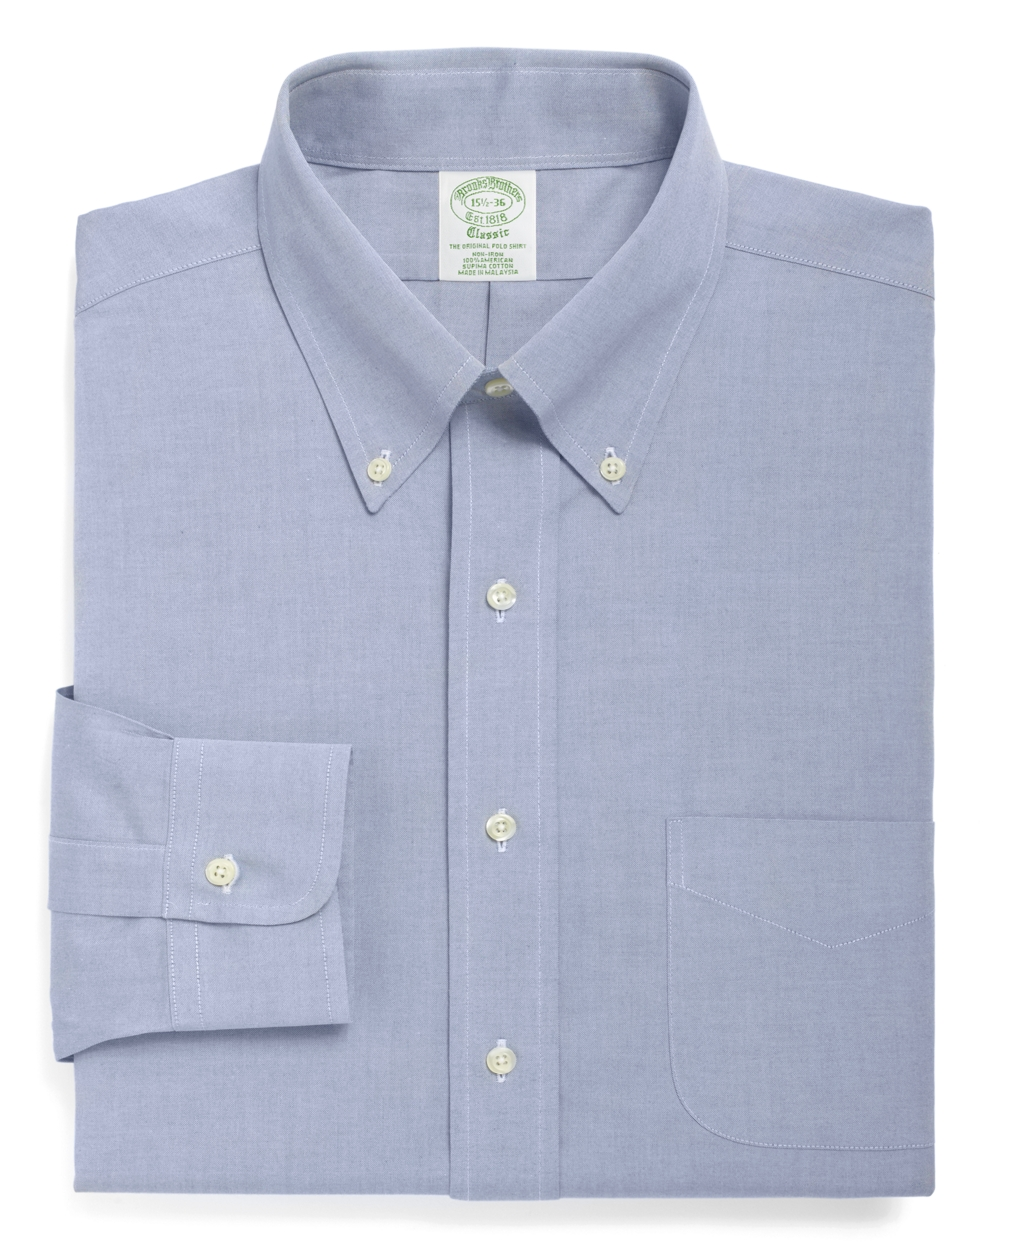 Brooks brothers non iron milano fit button down collar for Brooks brothers dress shirt fit guide